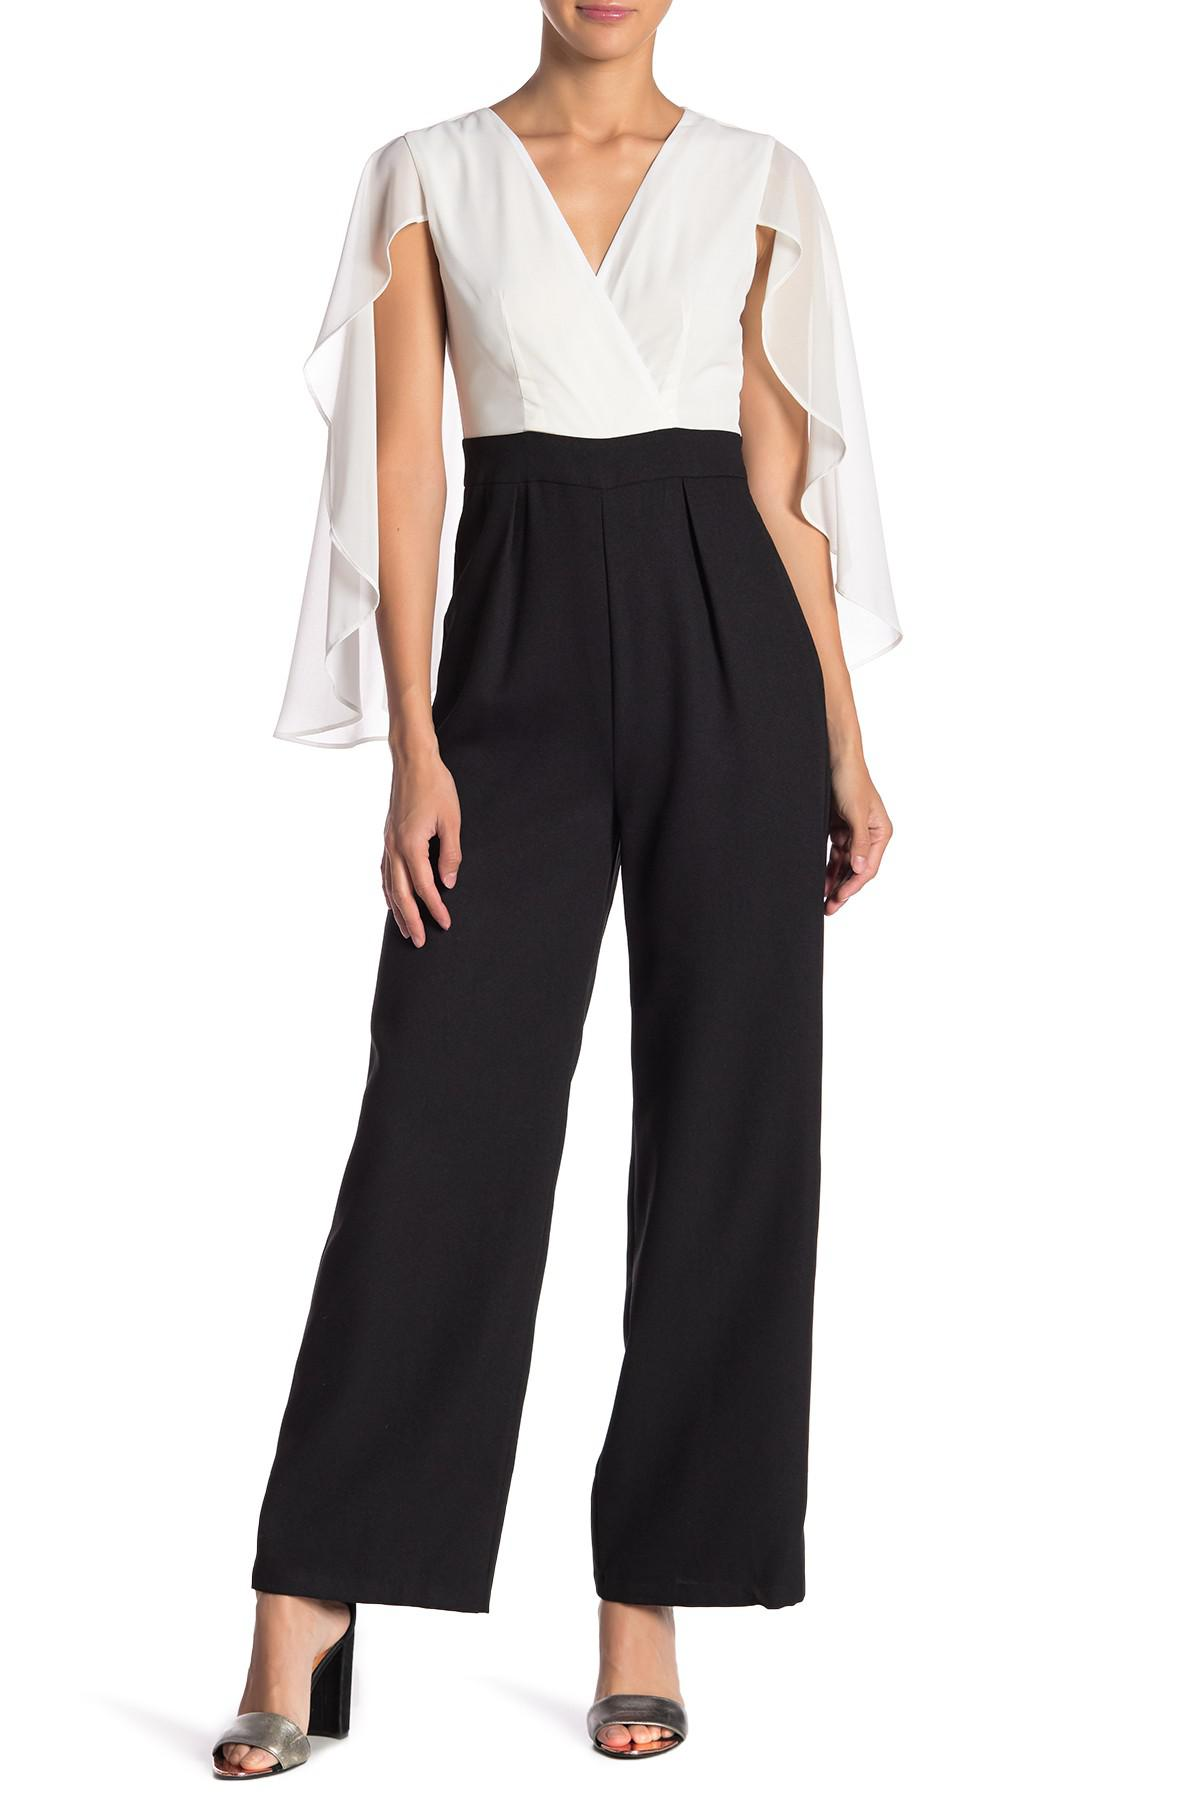 d874a450ca93 Lyst - FAVLUX Jumpsuit With Cape in Black